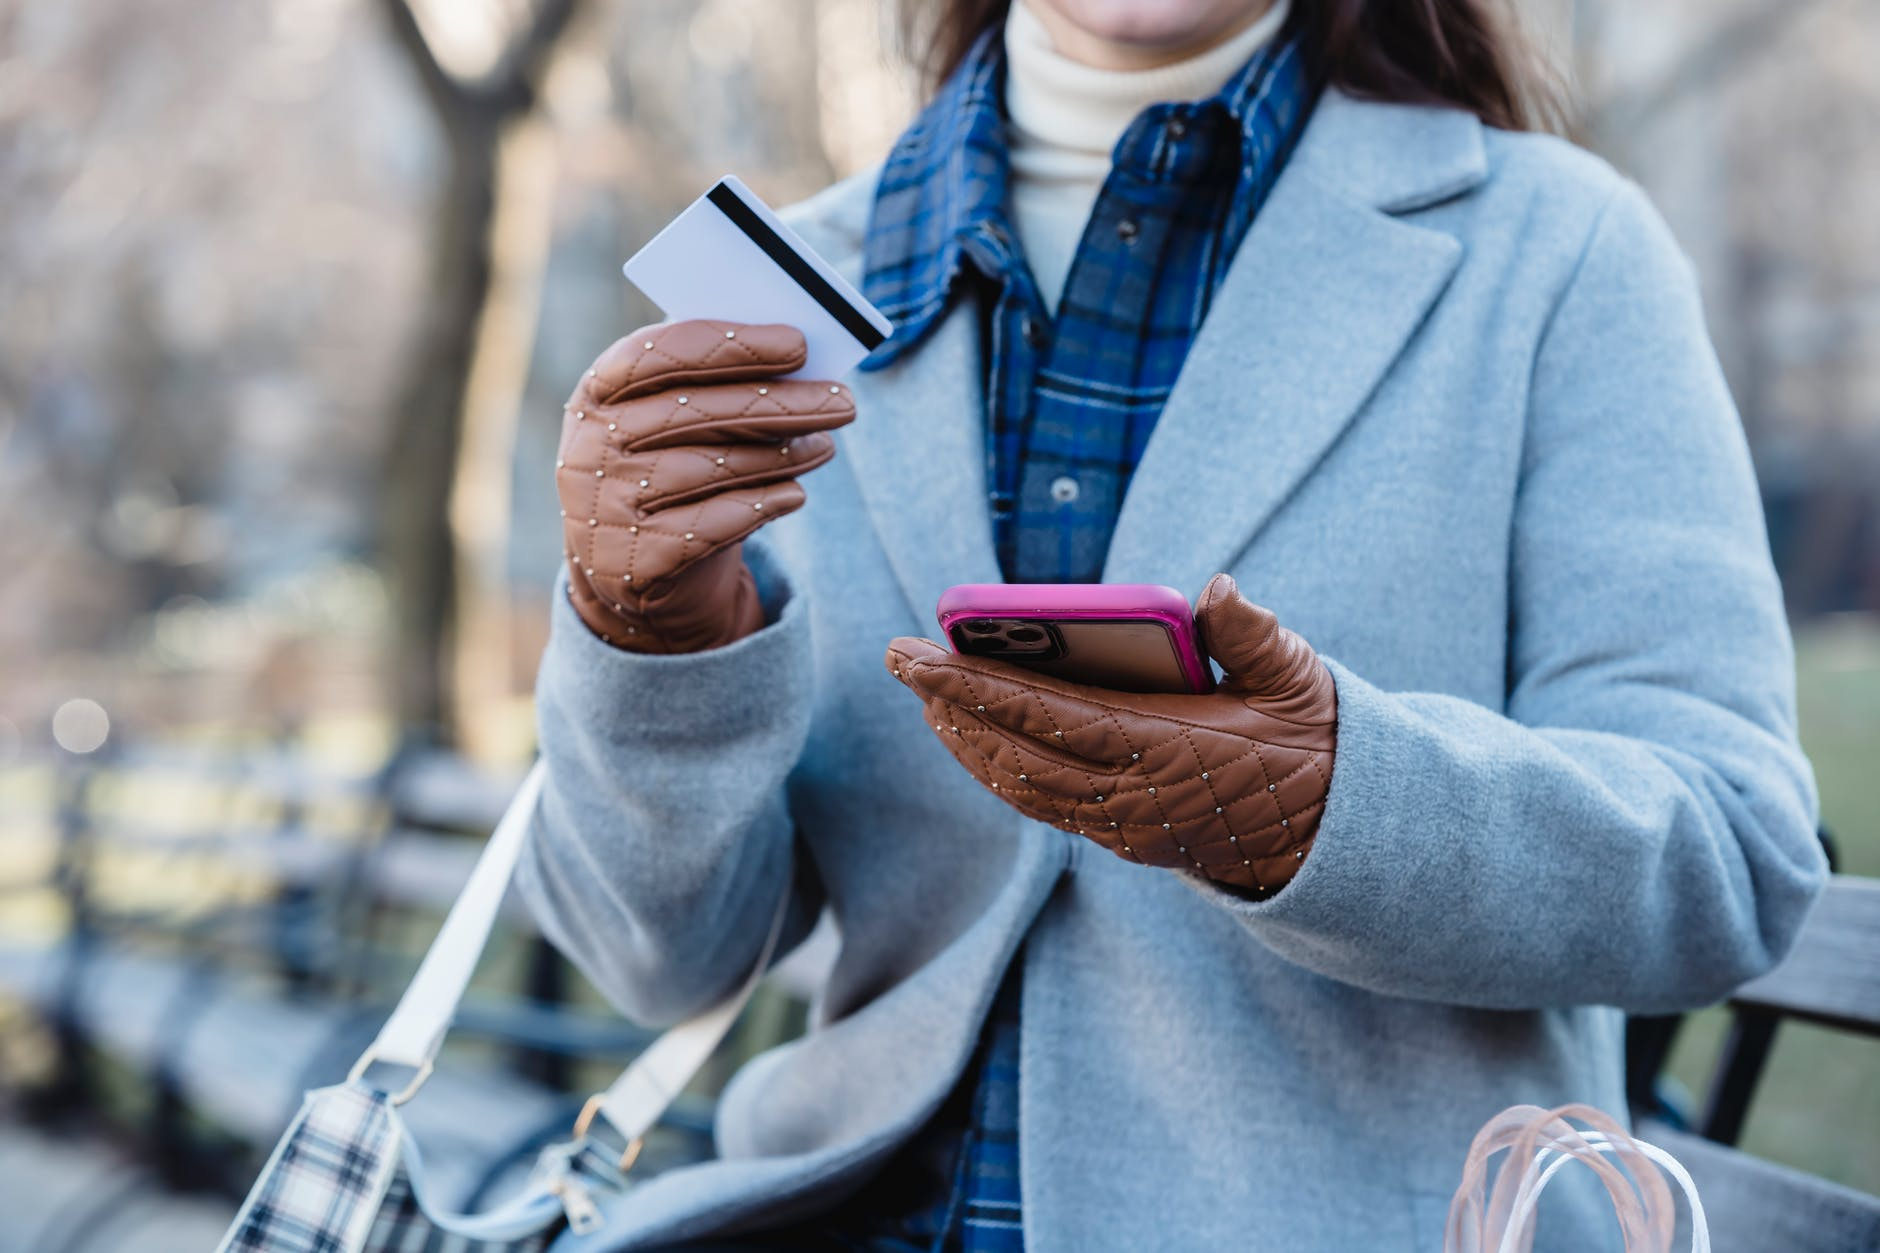 woman using smartphone and holding credit card while sitting in park